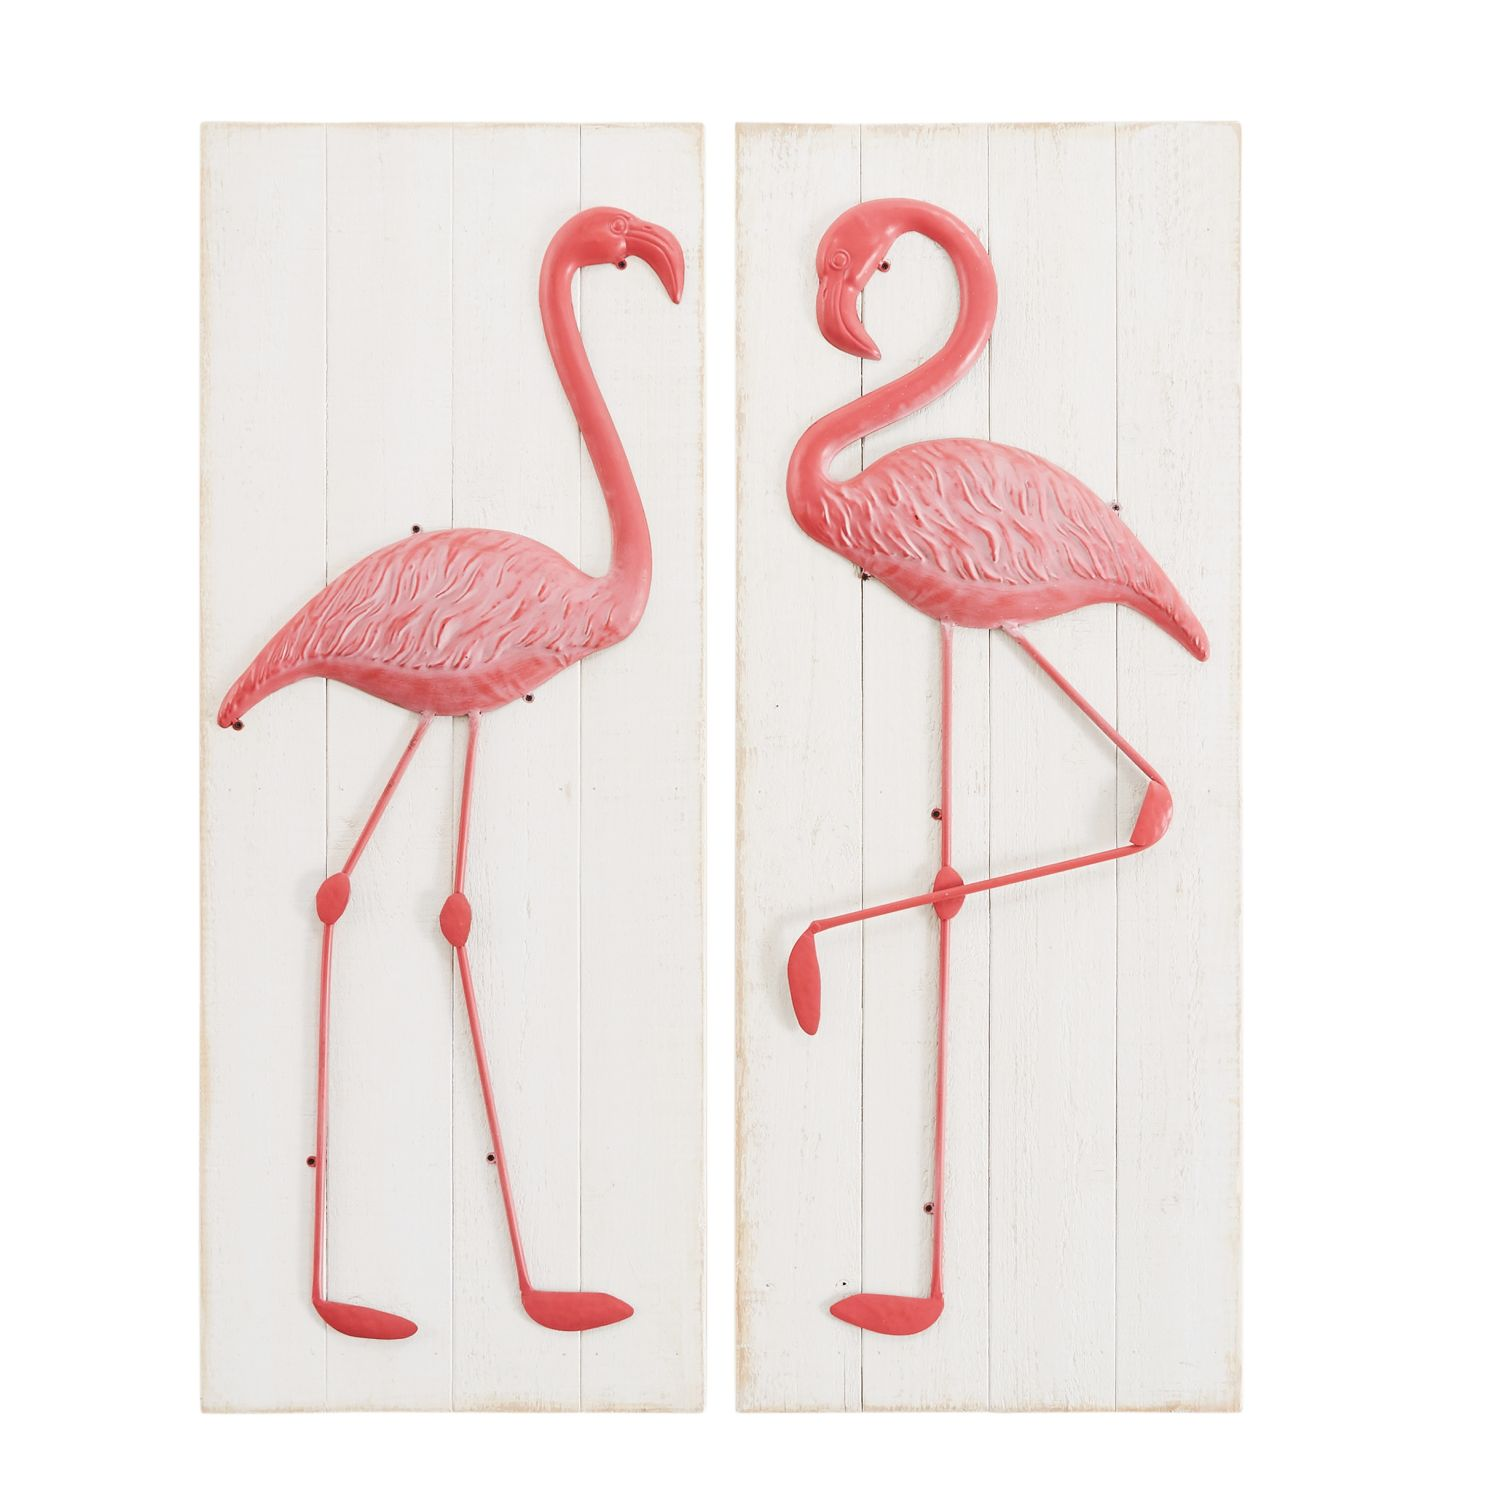 2 tableaux flamant rose en sapin blanc h92 maisons du monde. Black Bedroom Furniture Sets. Home Design Ideas